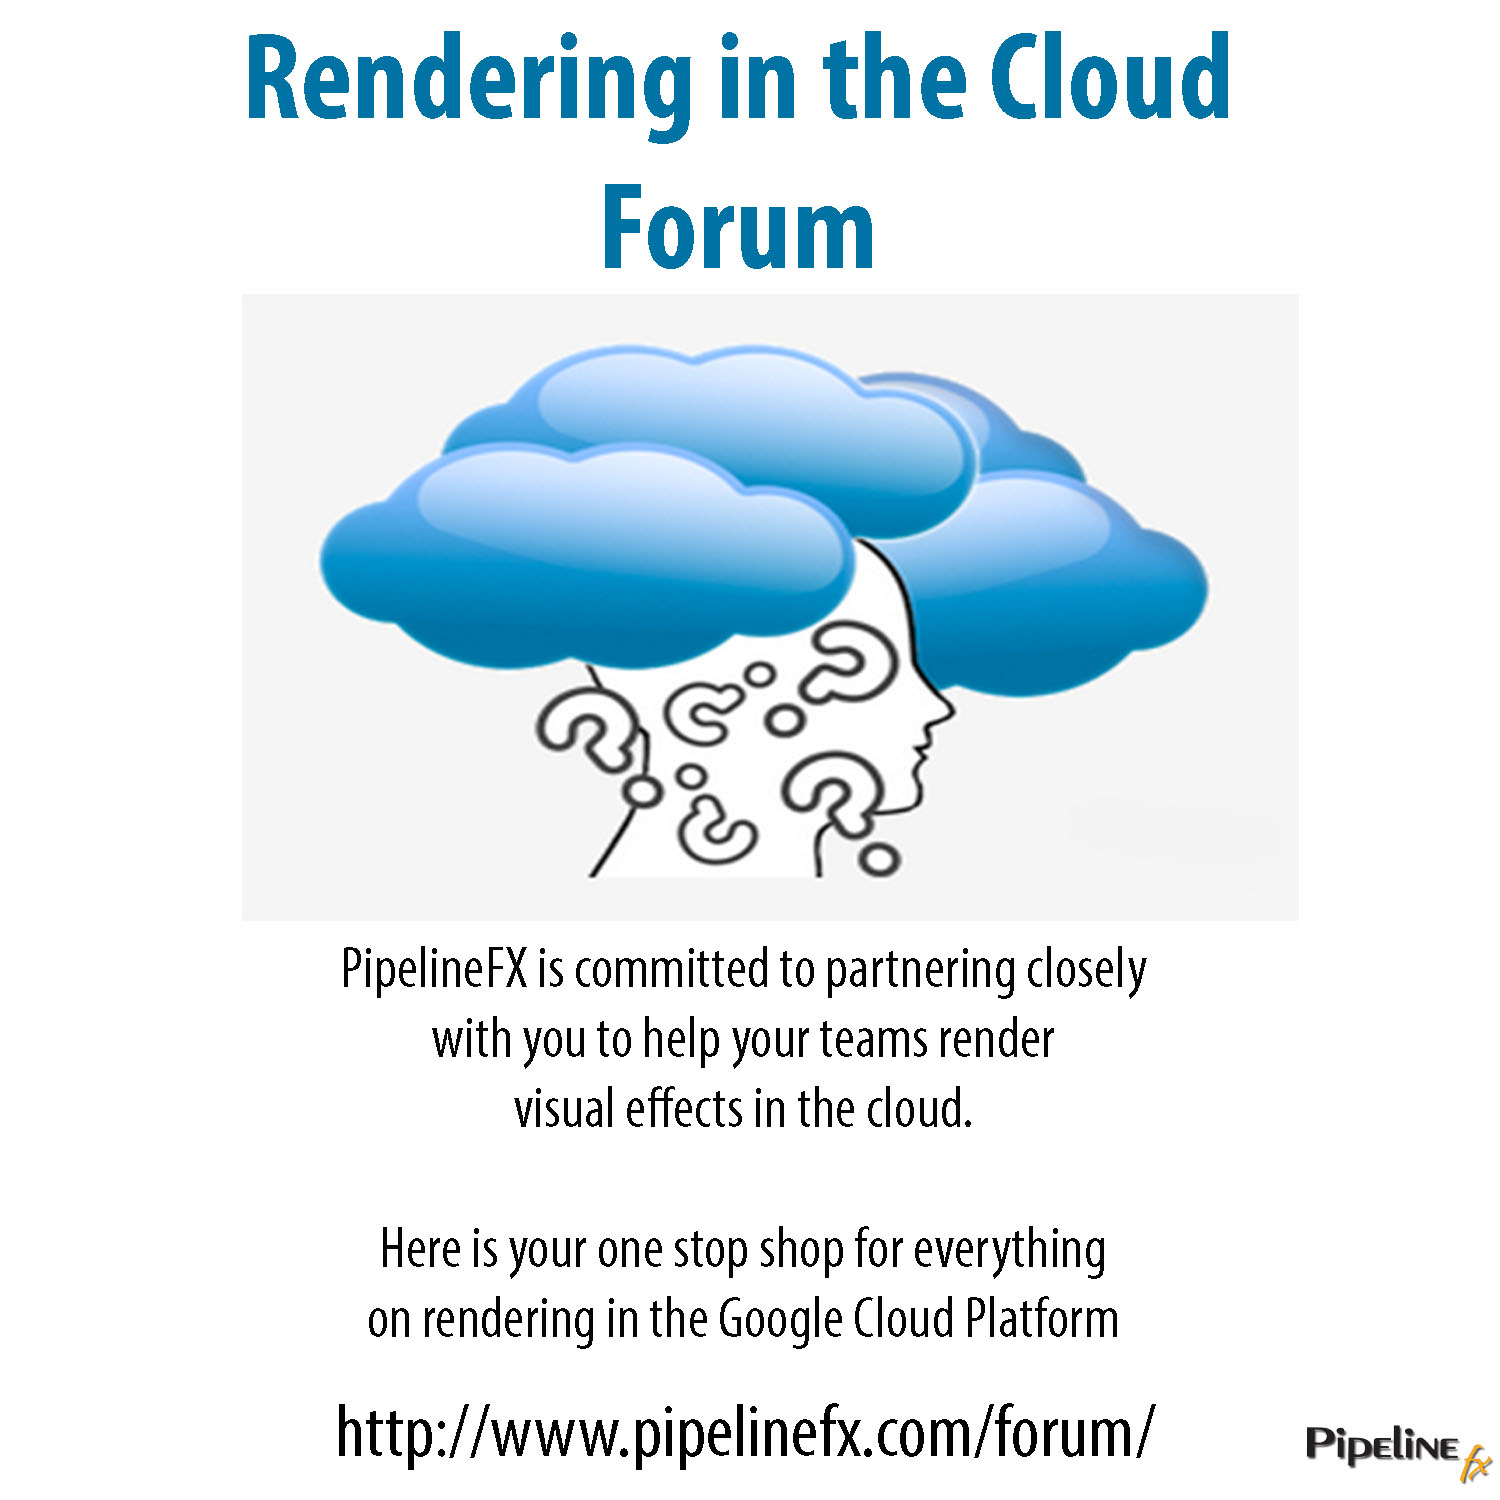 rendering in the cloud forum